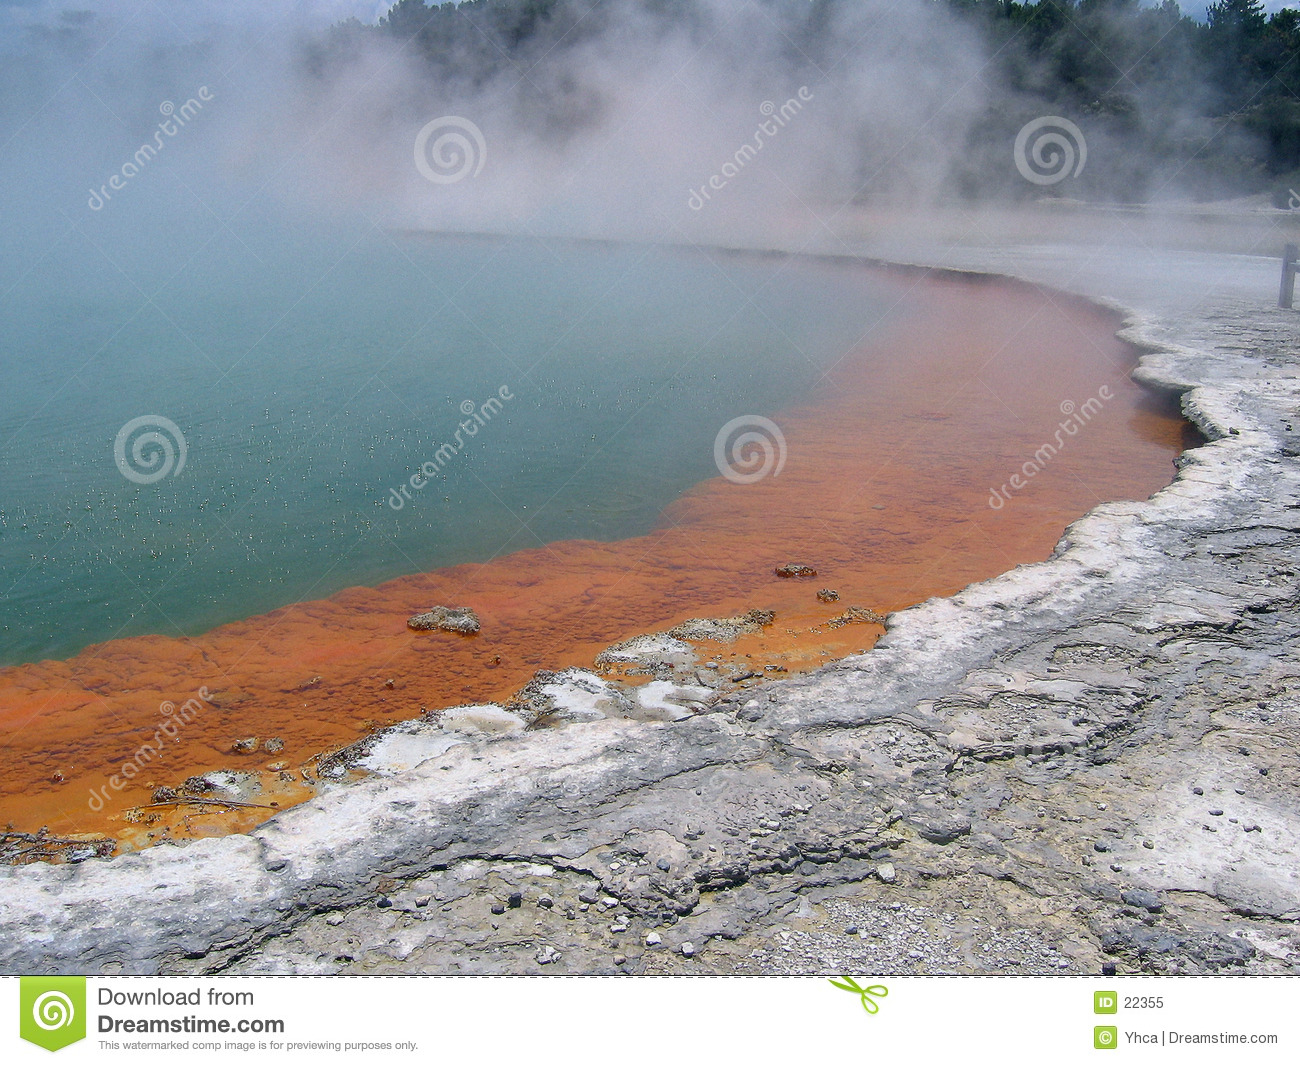 Champagne Pool - Natural geothermal pool